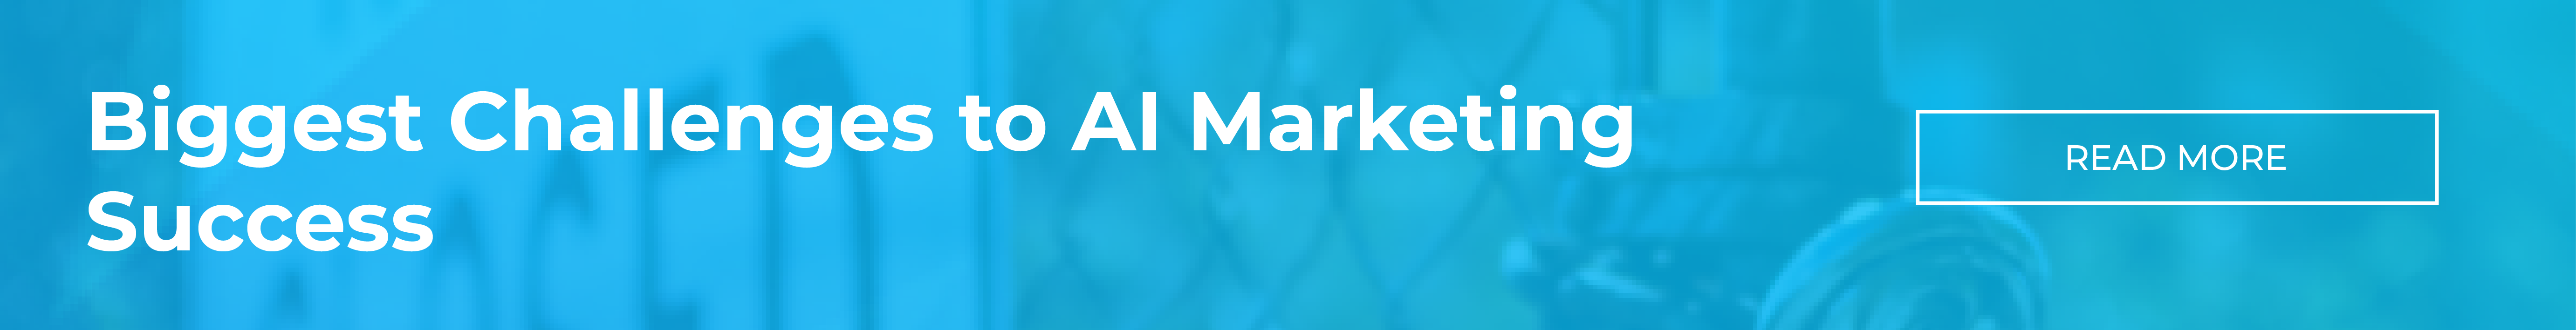 Biggest Challenges to AI Marketing Success